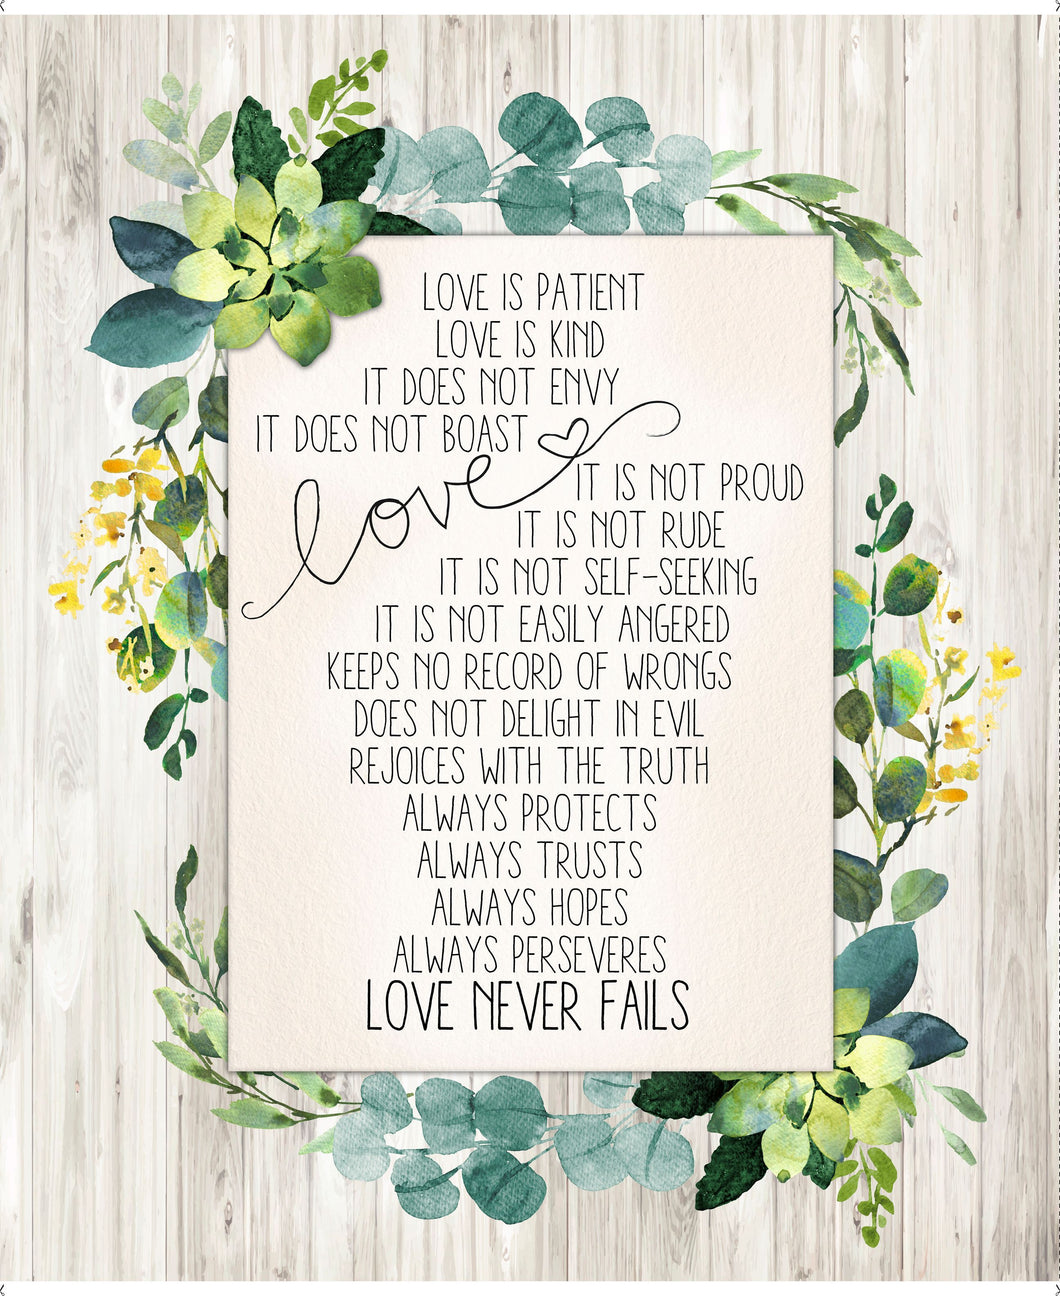 Love Never Fails Cotton Fabric Panel